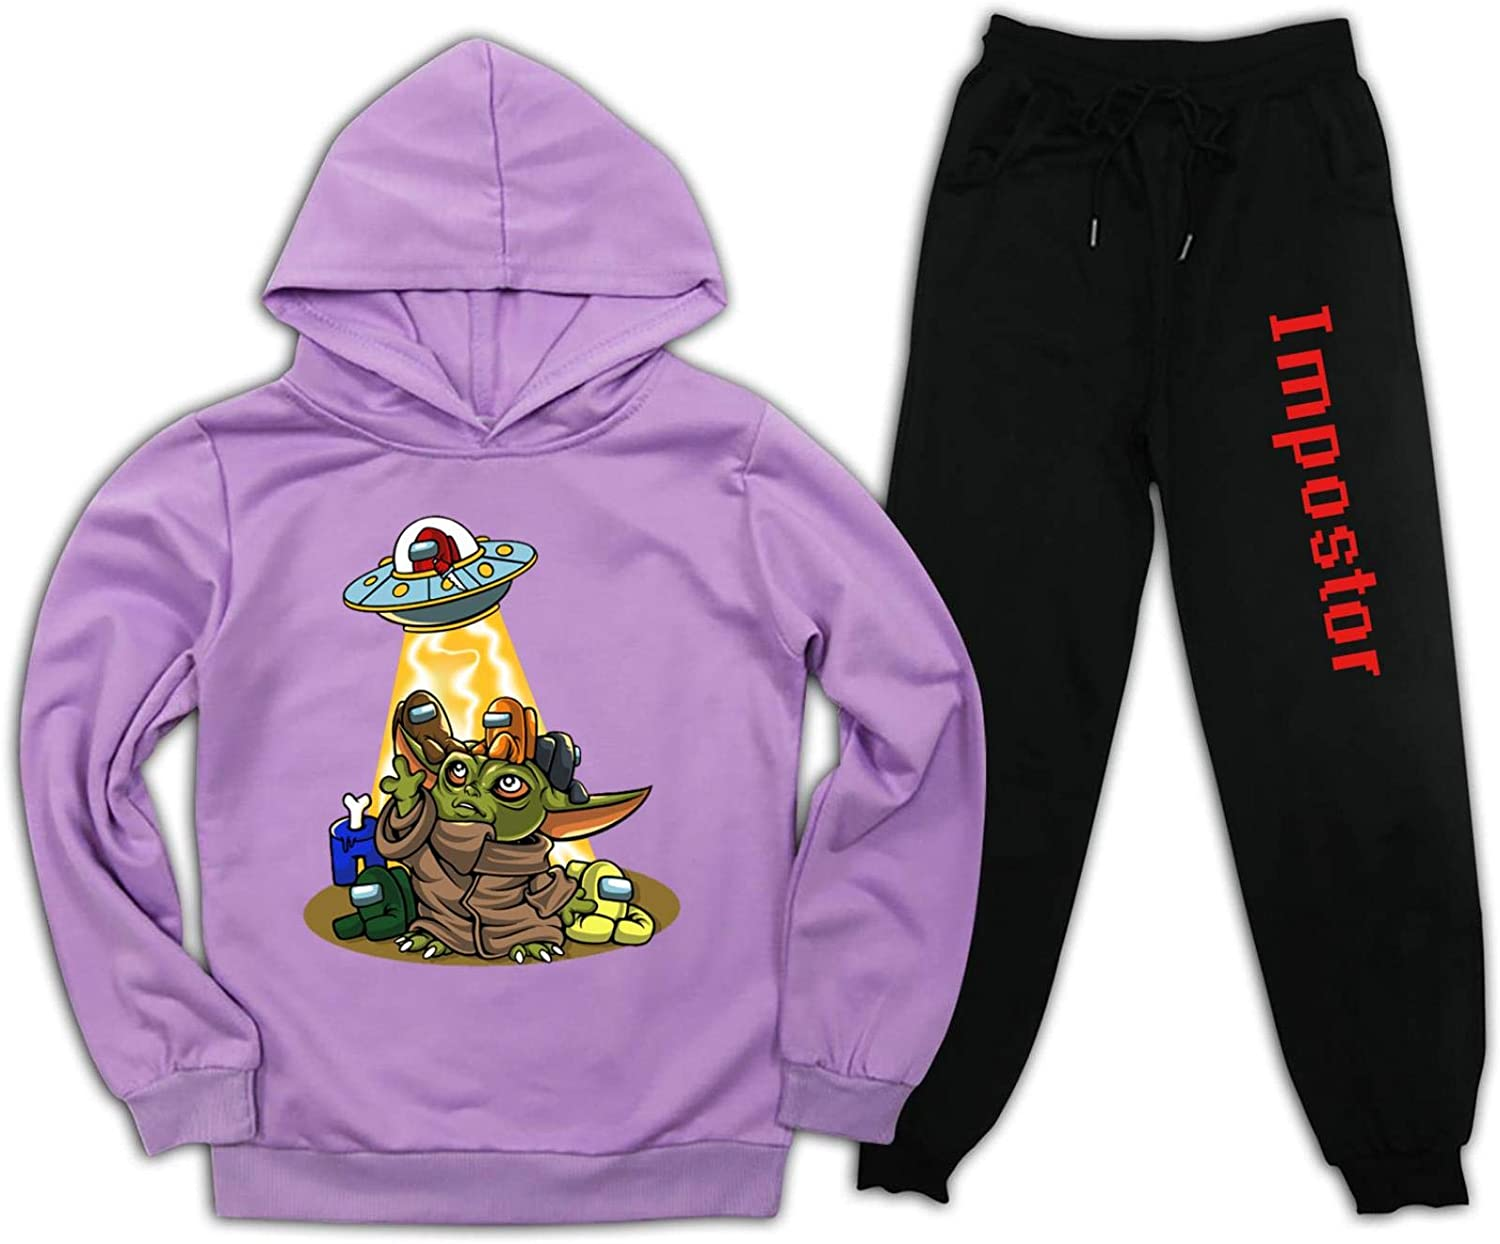 Kids Among US Pullover Hoodie and Sweatpants Set for Boys Girls 2 Piece Sweatshirt Set